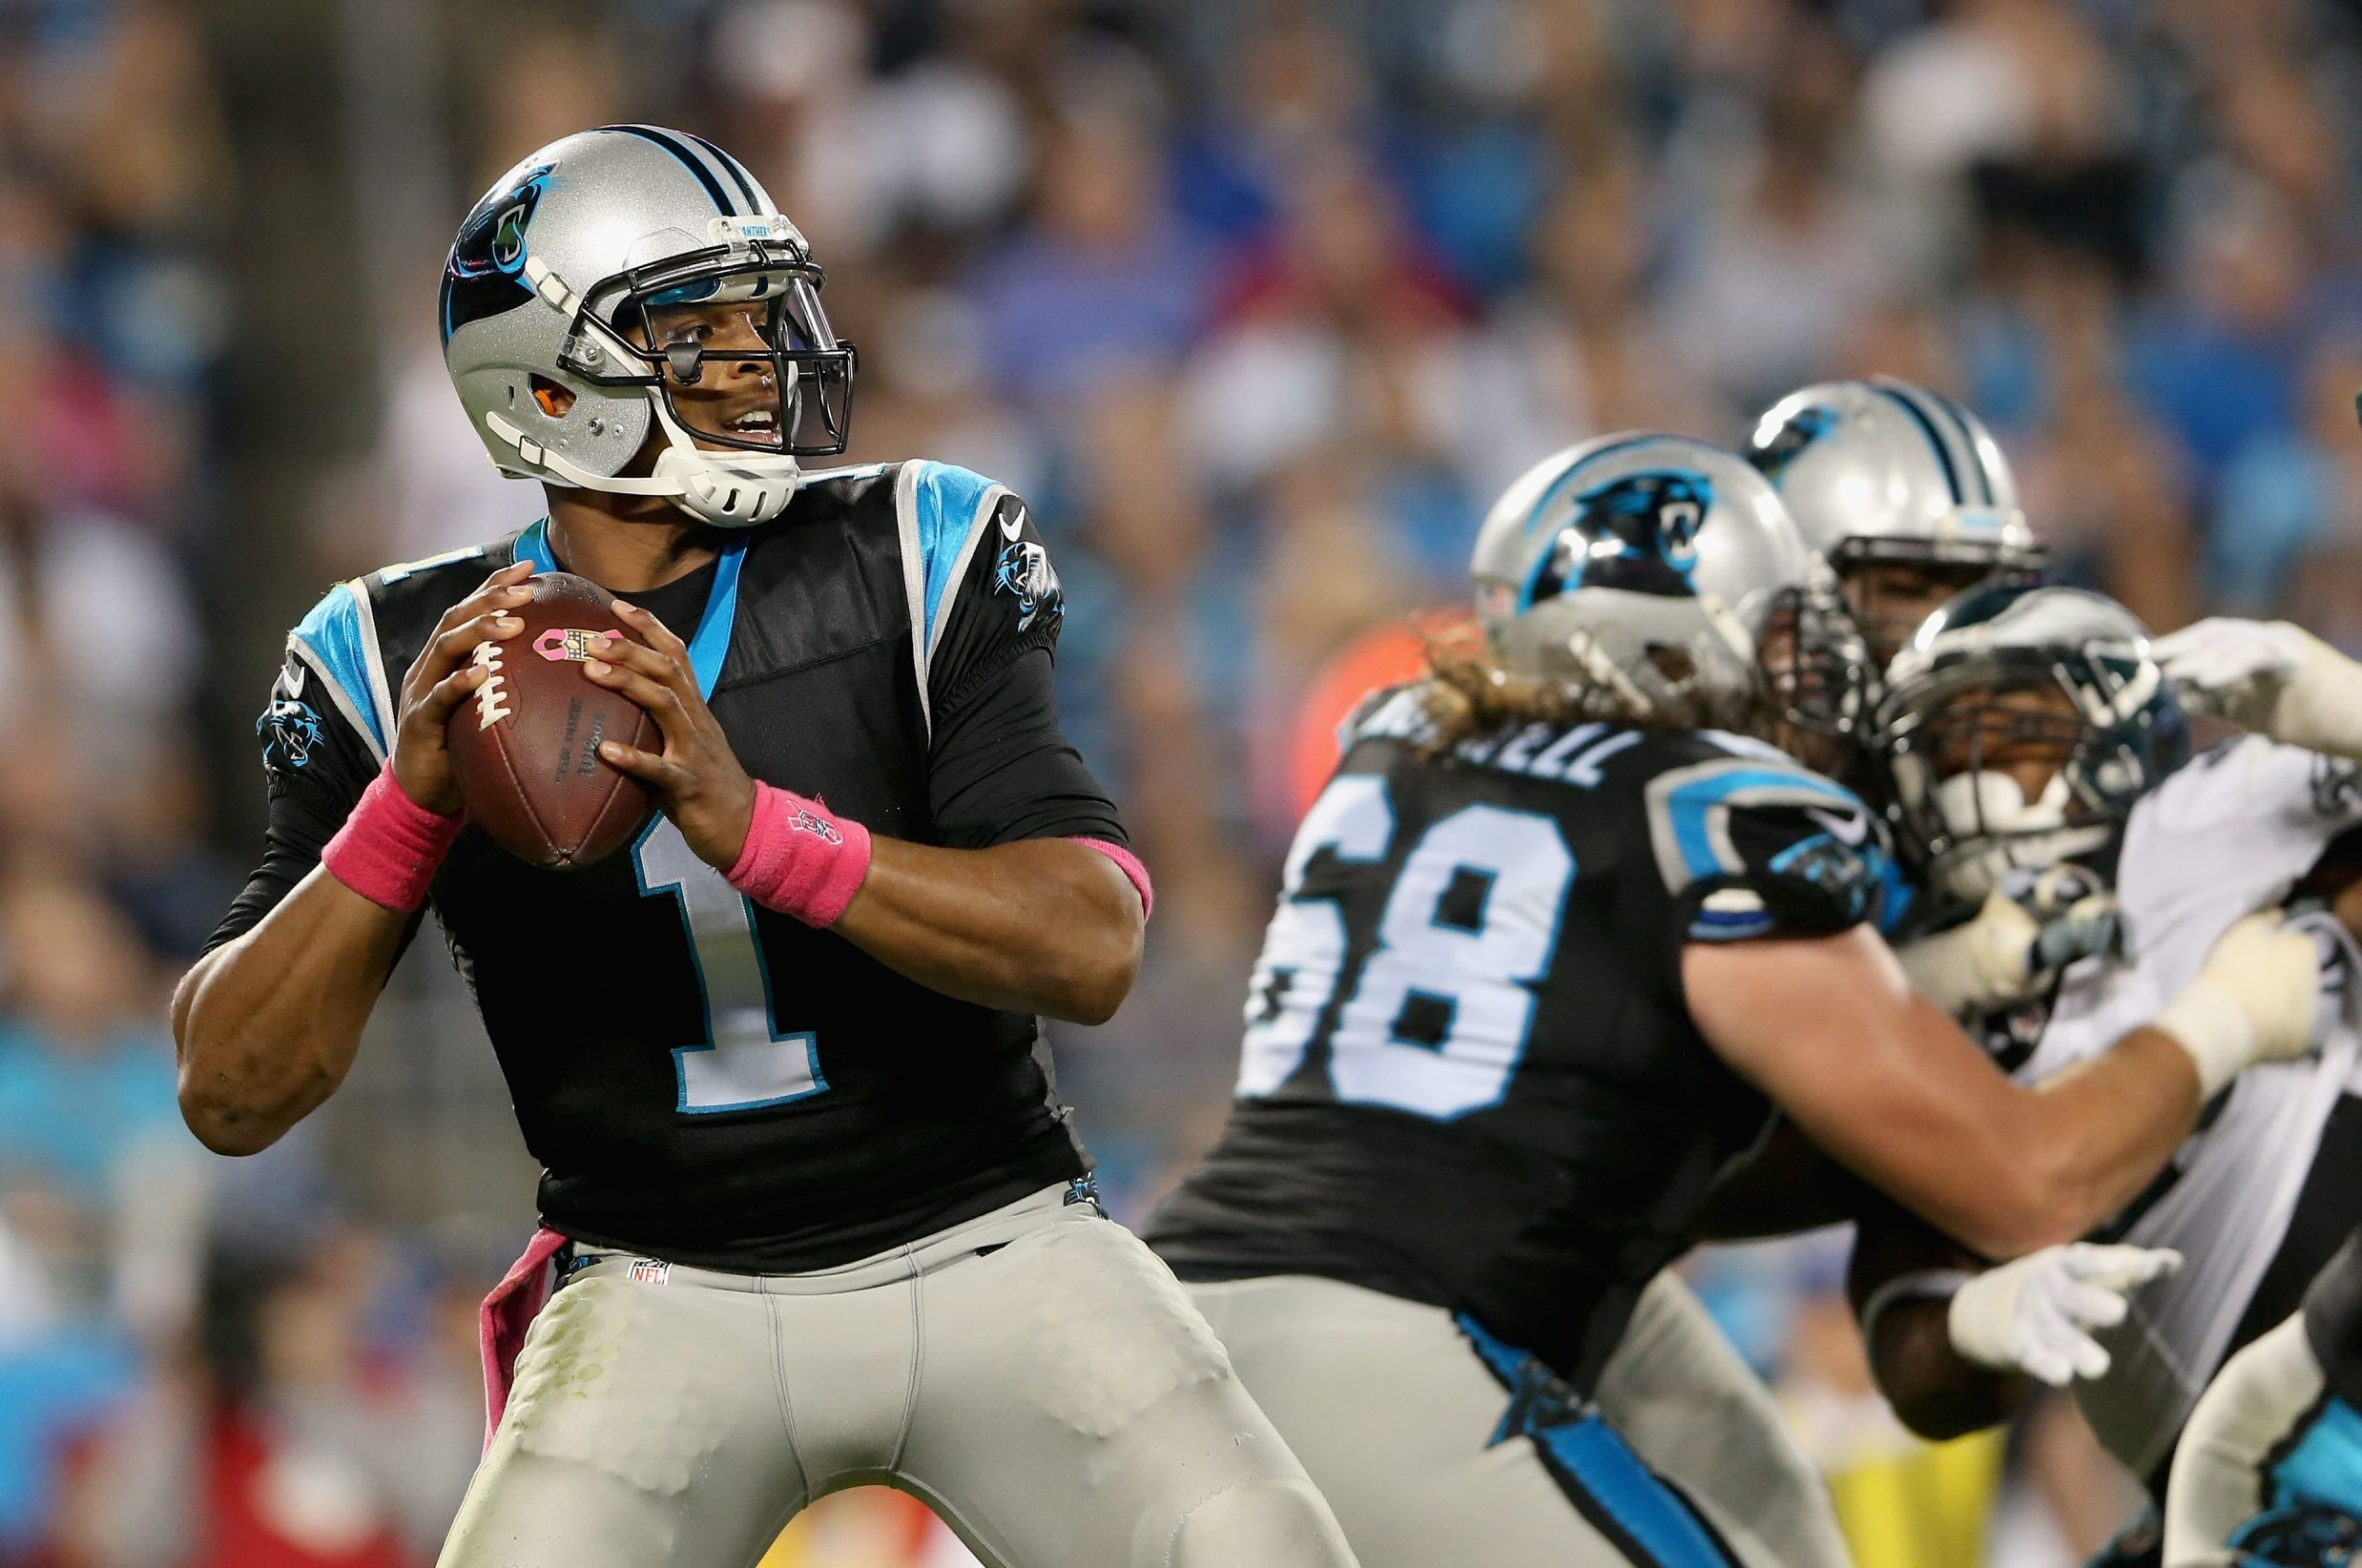 Quarterback Cam Newton has been involved in 26 of the undefeated Carolina Panthers' 32 offensive touchdowns this season.